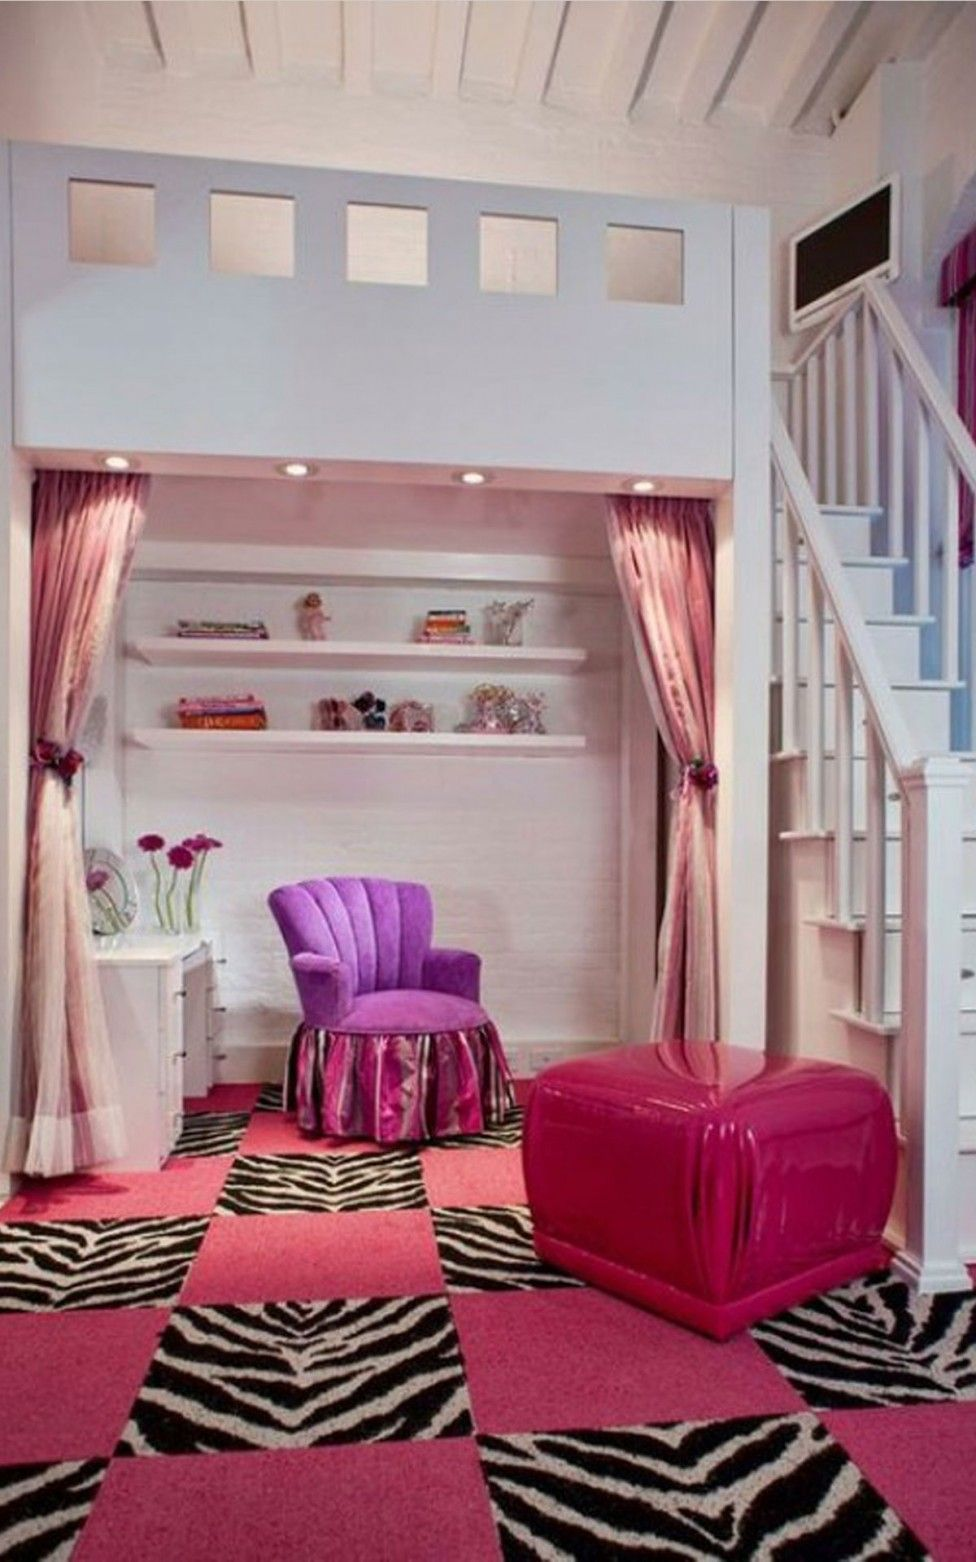 Simple bedroom design ideas for teenage girls - Small Room Ideas For Girls With Cute Color Bedroom 22 Pretty Girls Room Design Room Layouts